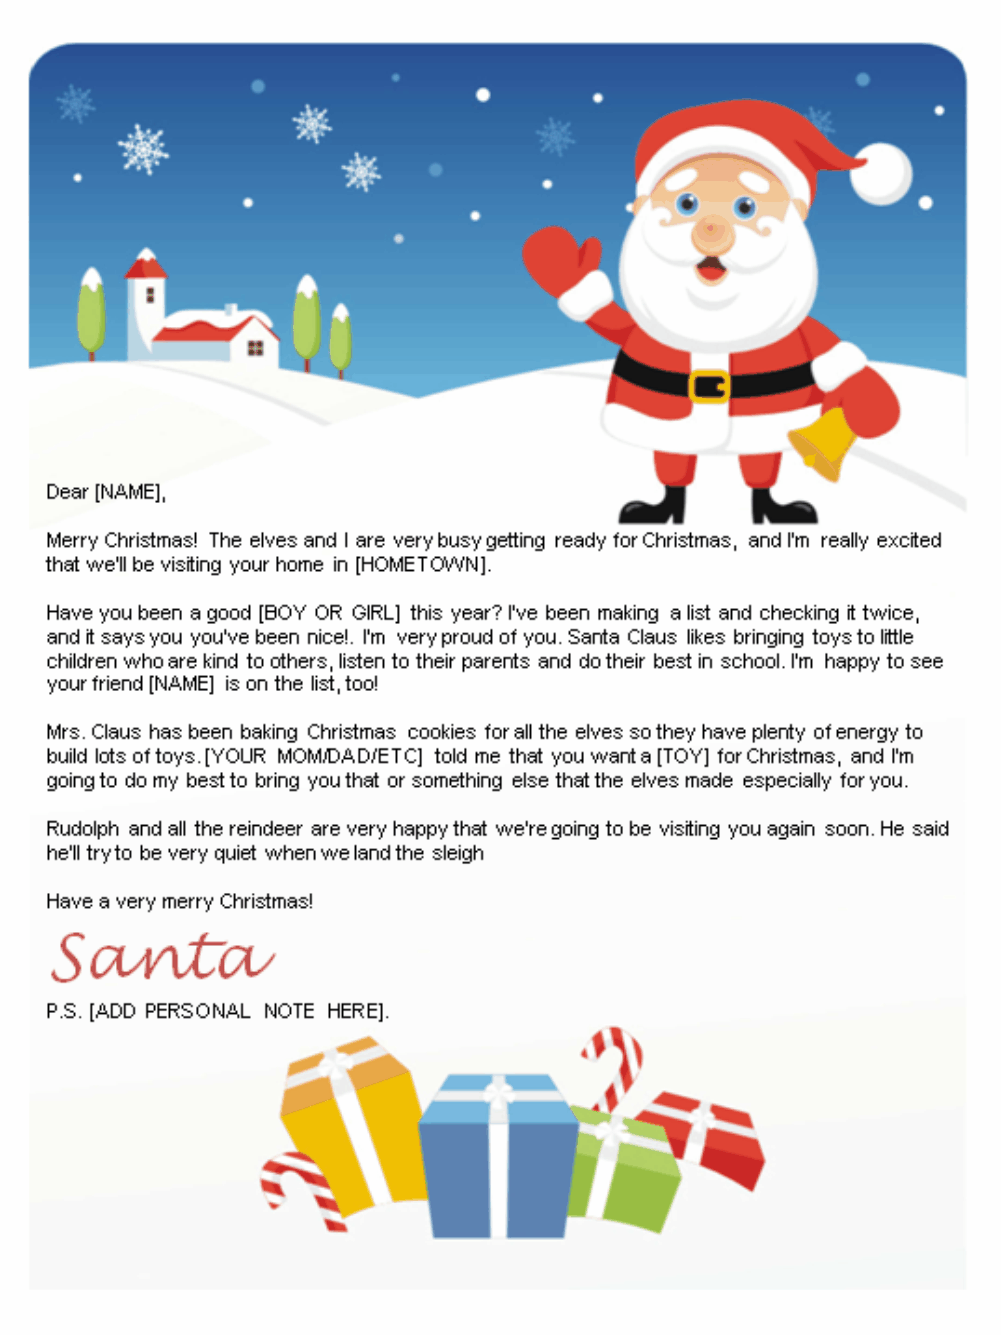 free letters from santa santa letters to print at home gifts designs at christmas